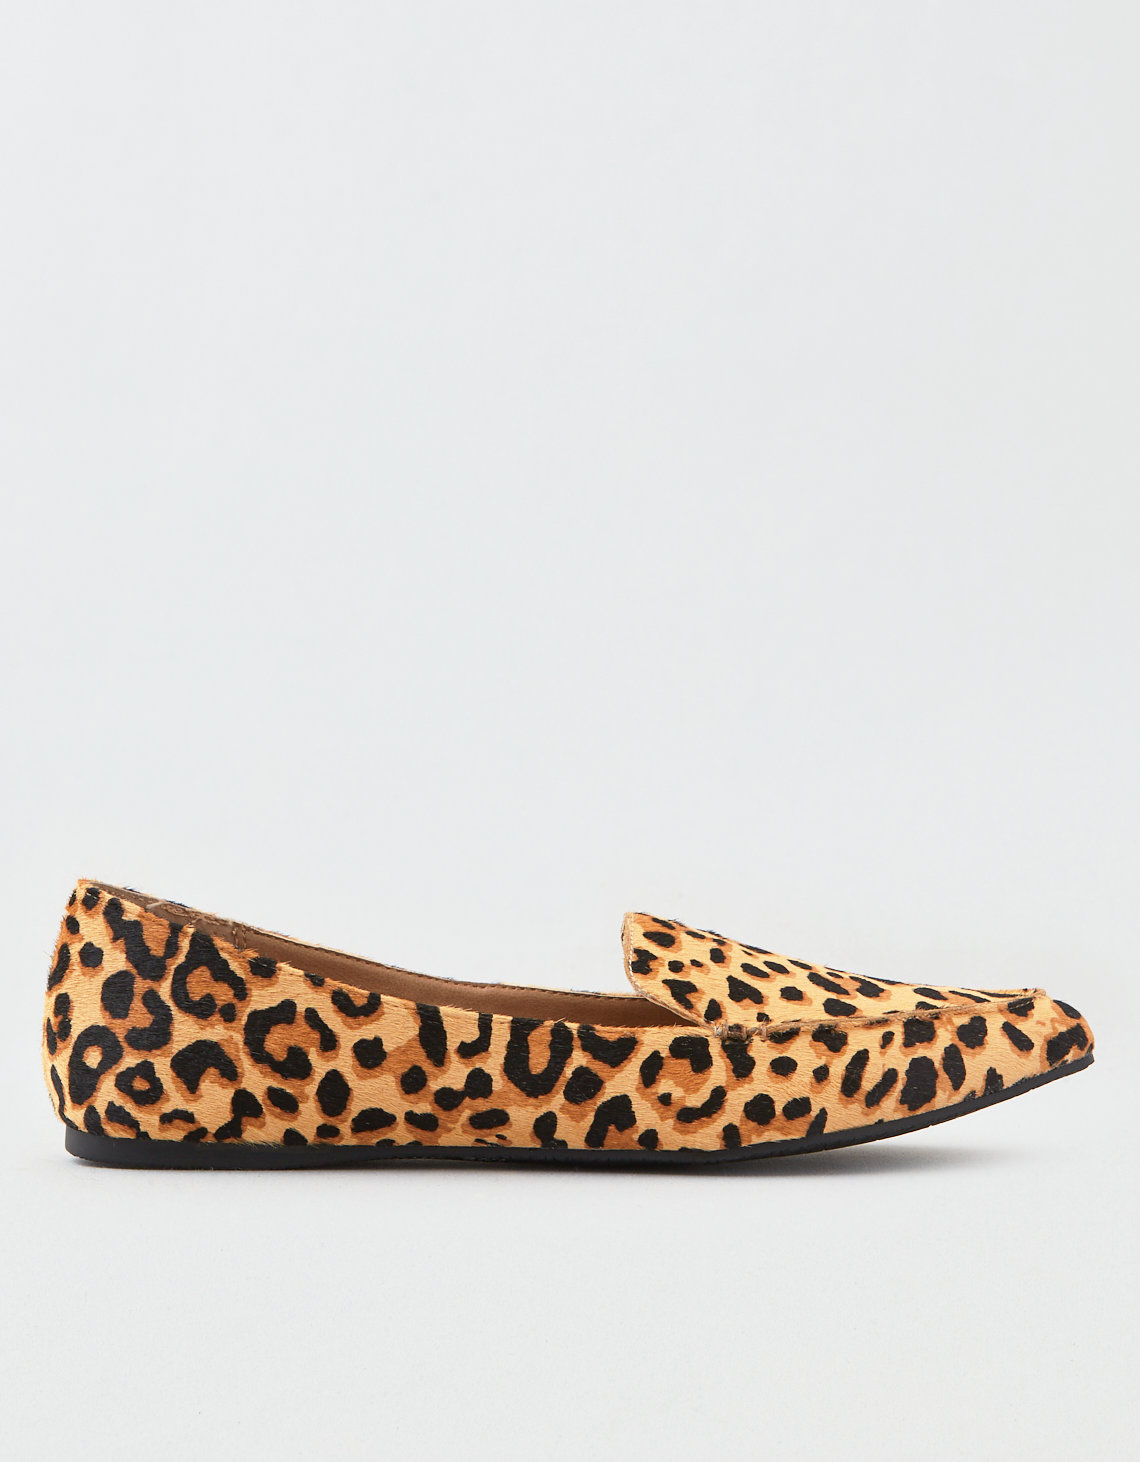 7c35297315a Steve Madden Featherl Leopard Flat. Placeholder image. Product Image